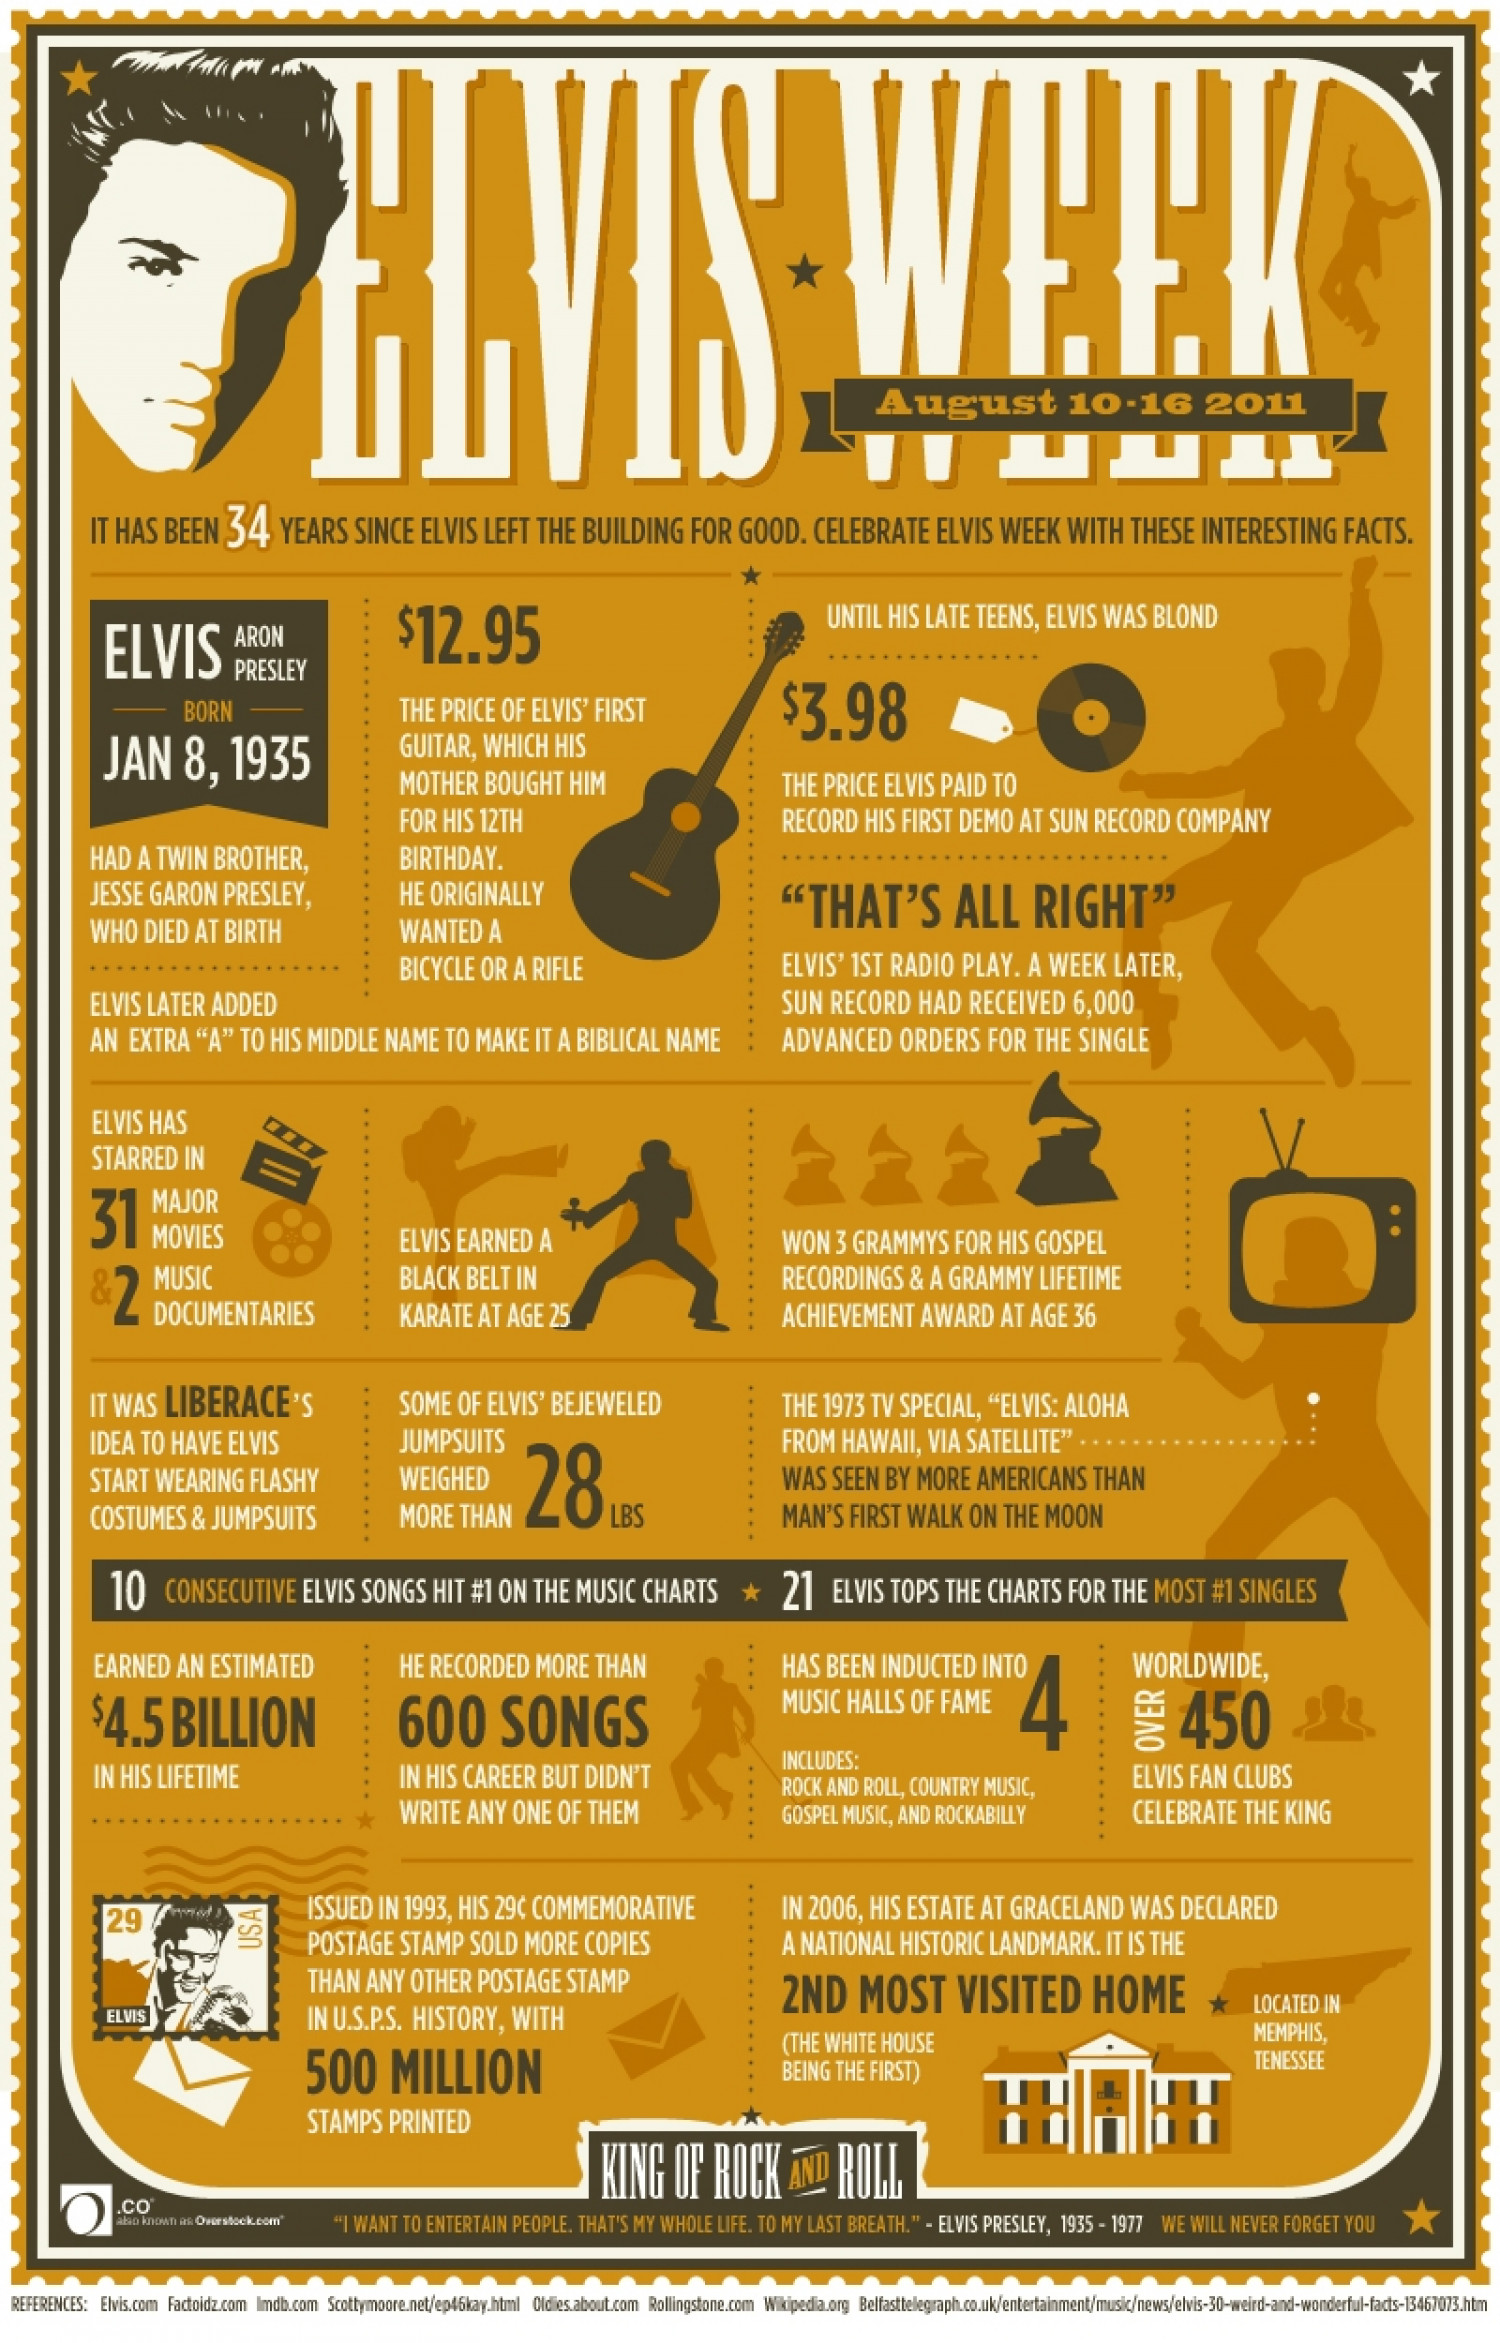 Elvis Week by O.co Infographic